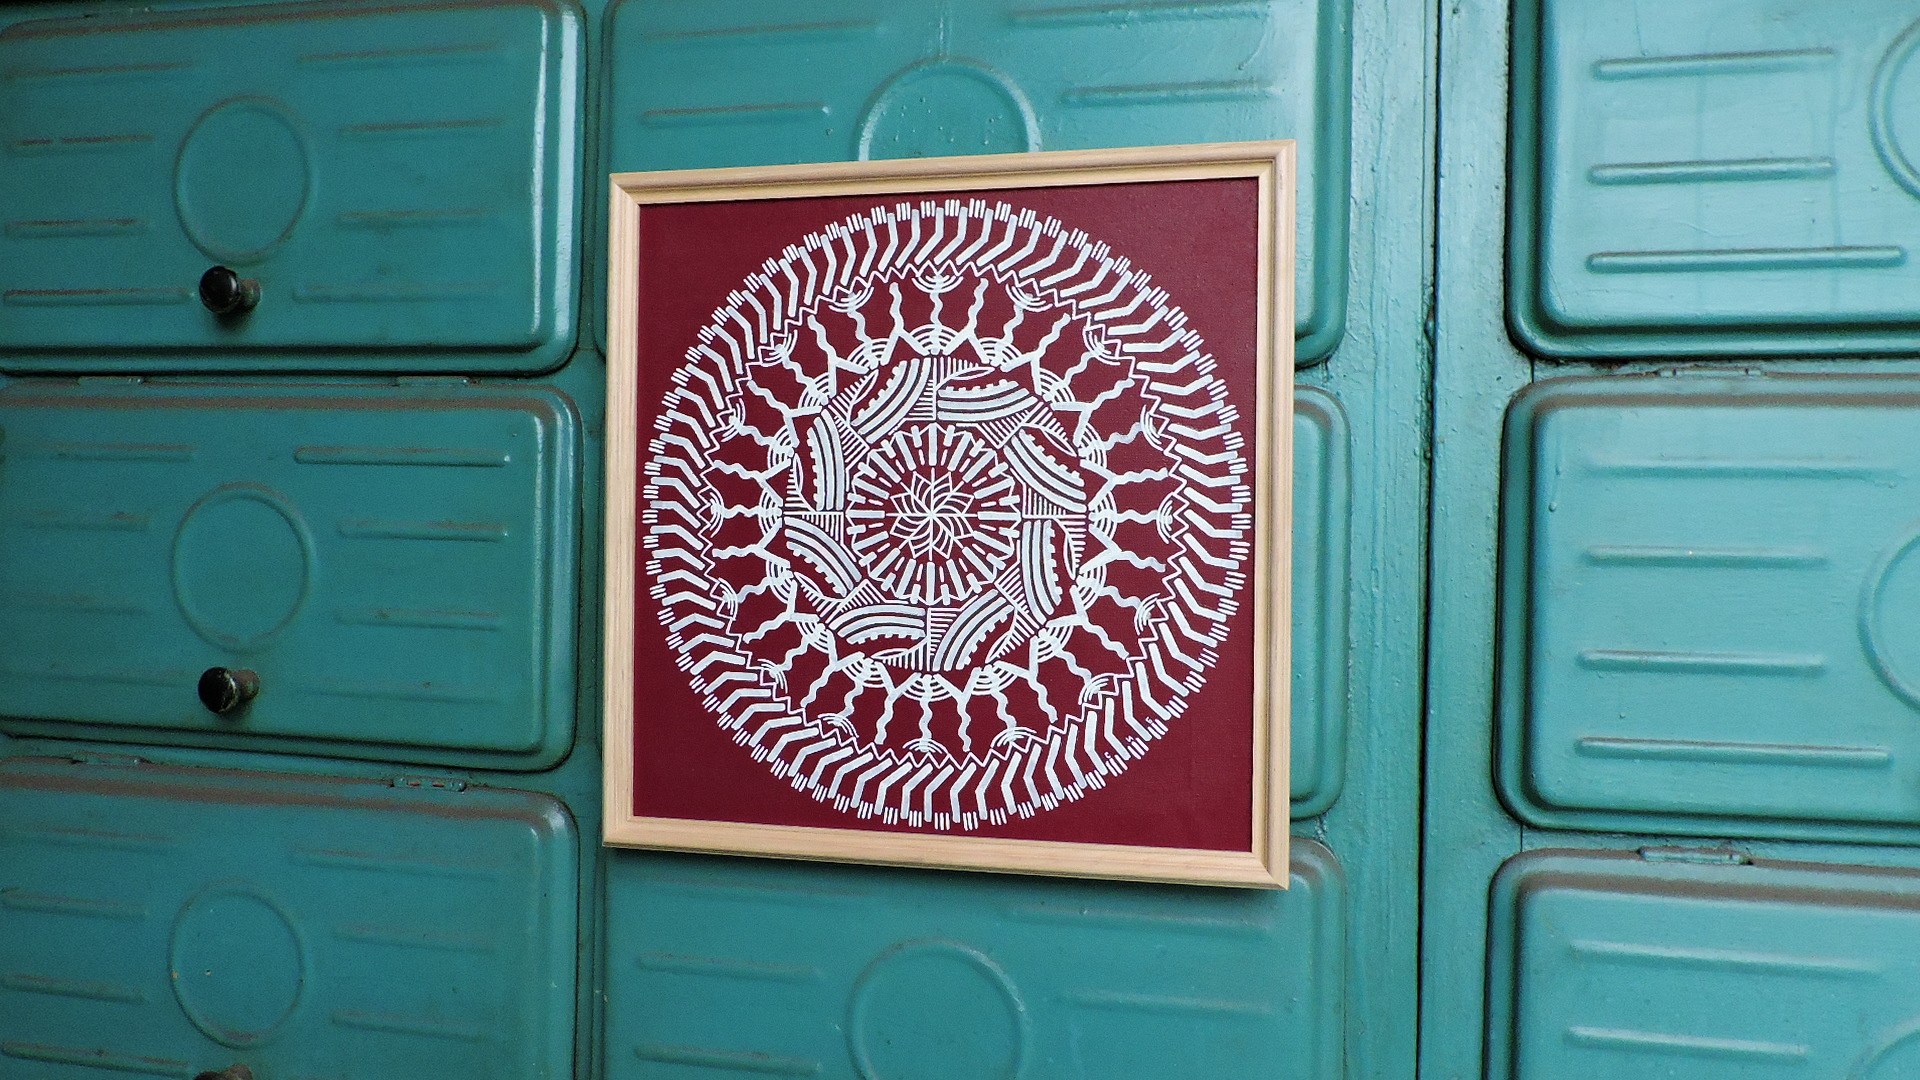 Drawn mandala, it seems that it is crocheted, easy to grasp